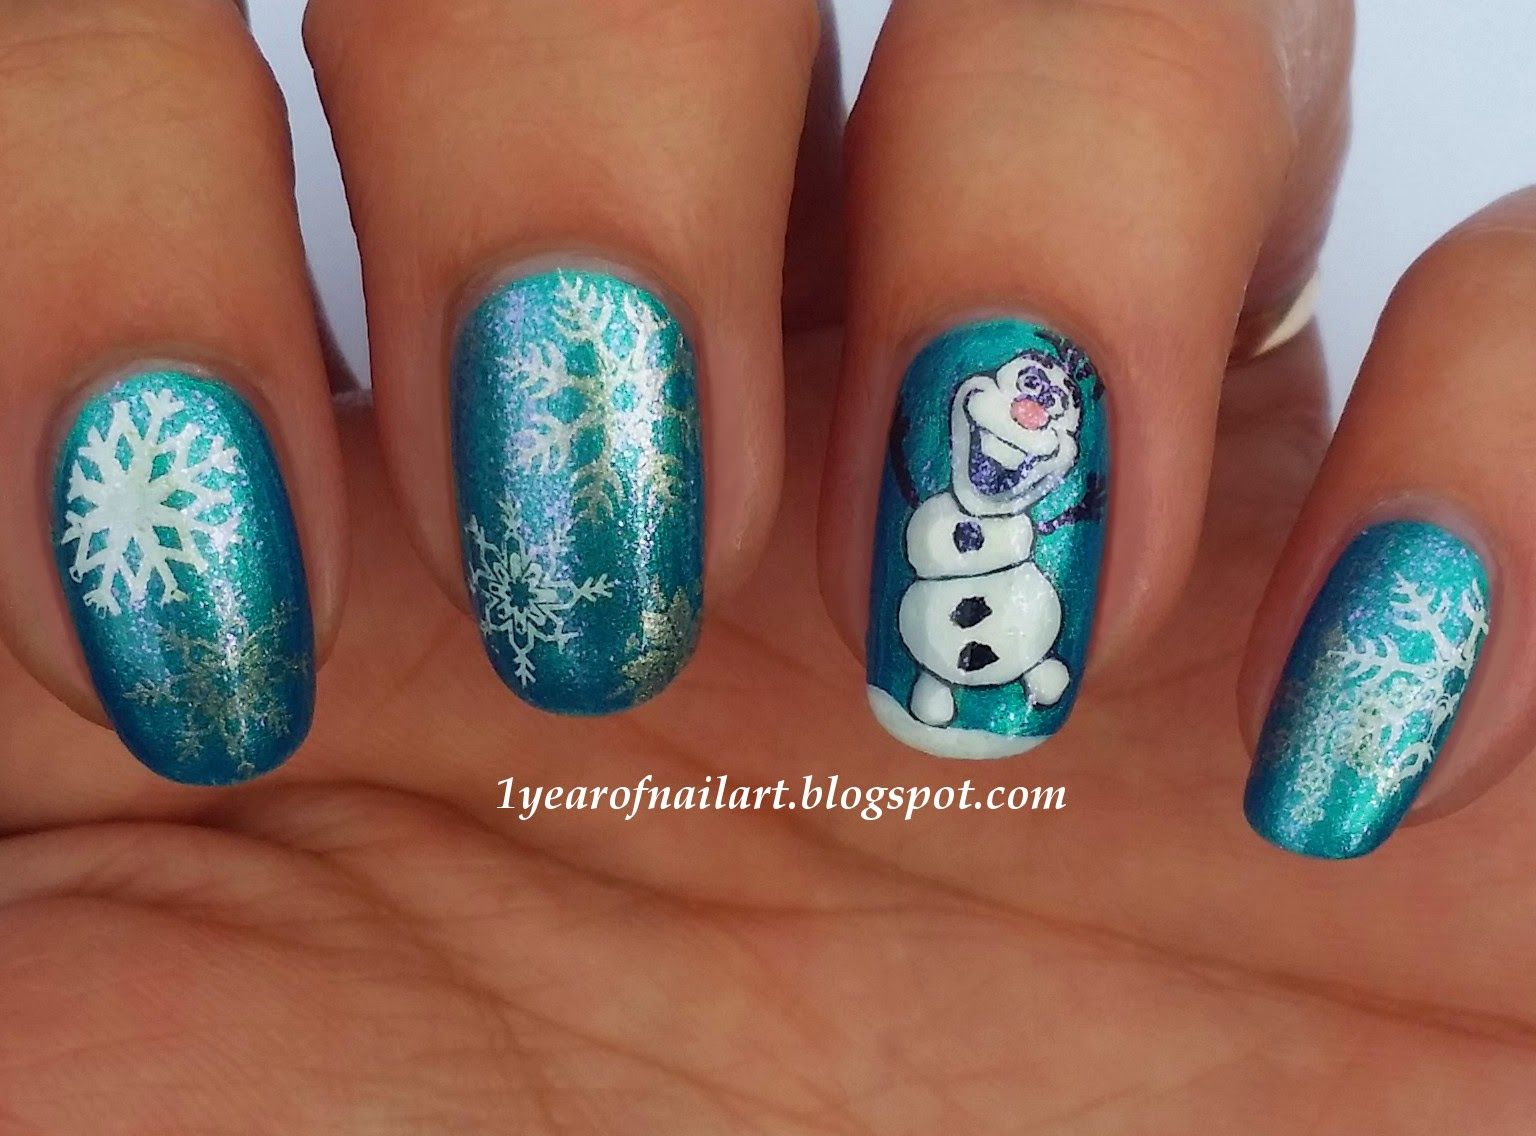 365+ days of nail art: Disney Frozen Olaf nail art | this and that ...